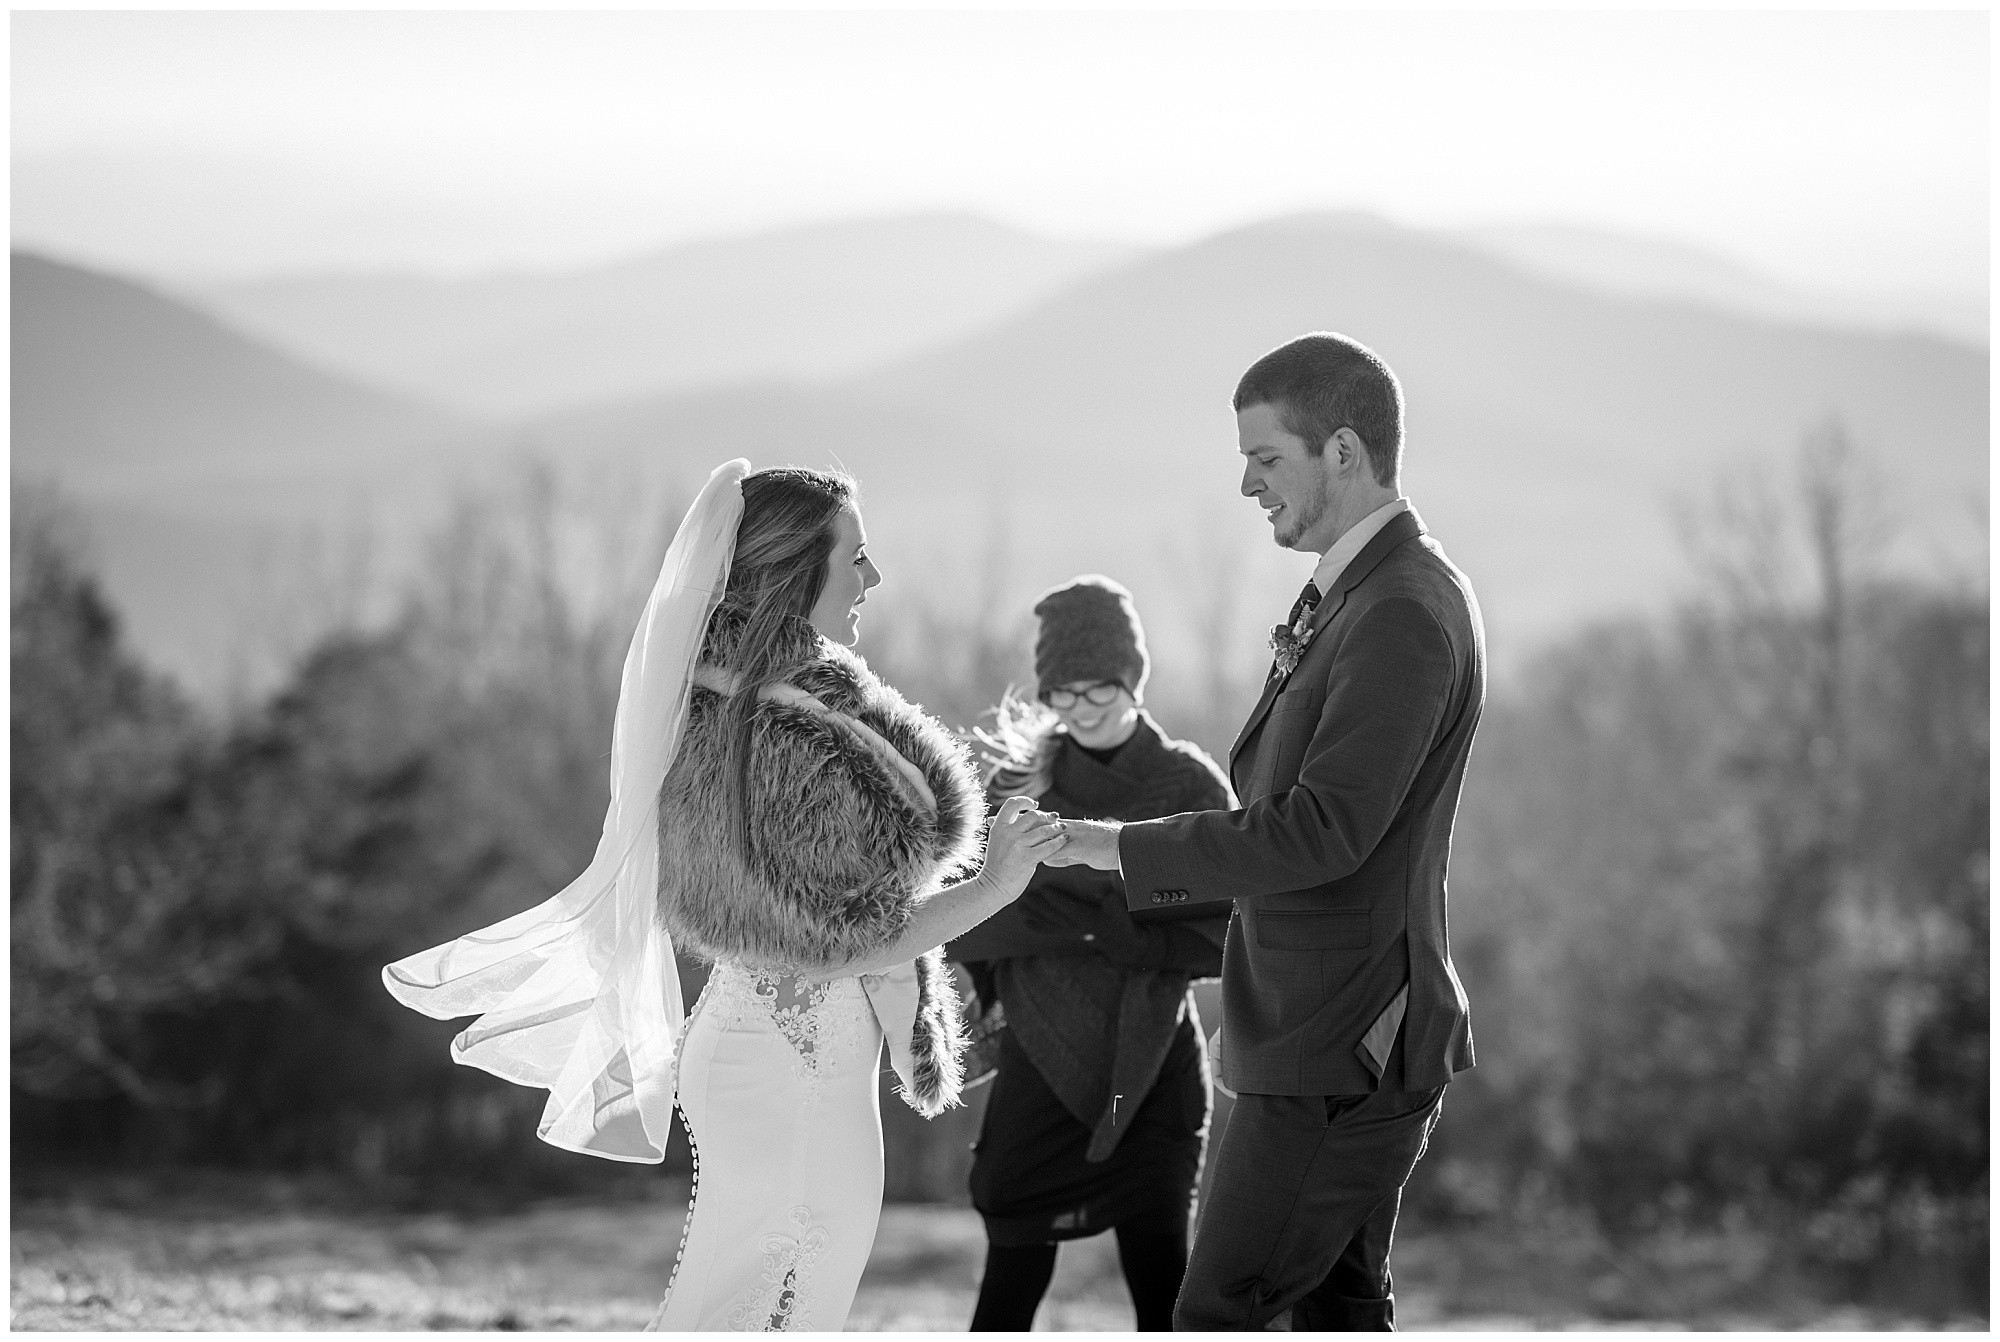 Winter elopement ceremony at Bearwallow Mountain in Asheville, NC | Legacy and Legend Full Service Elopements